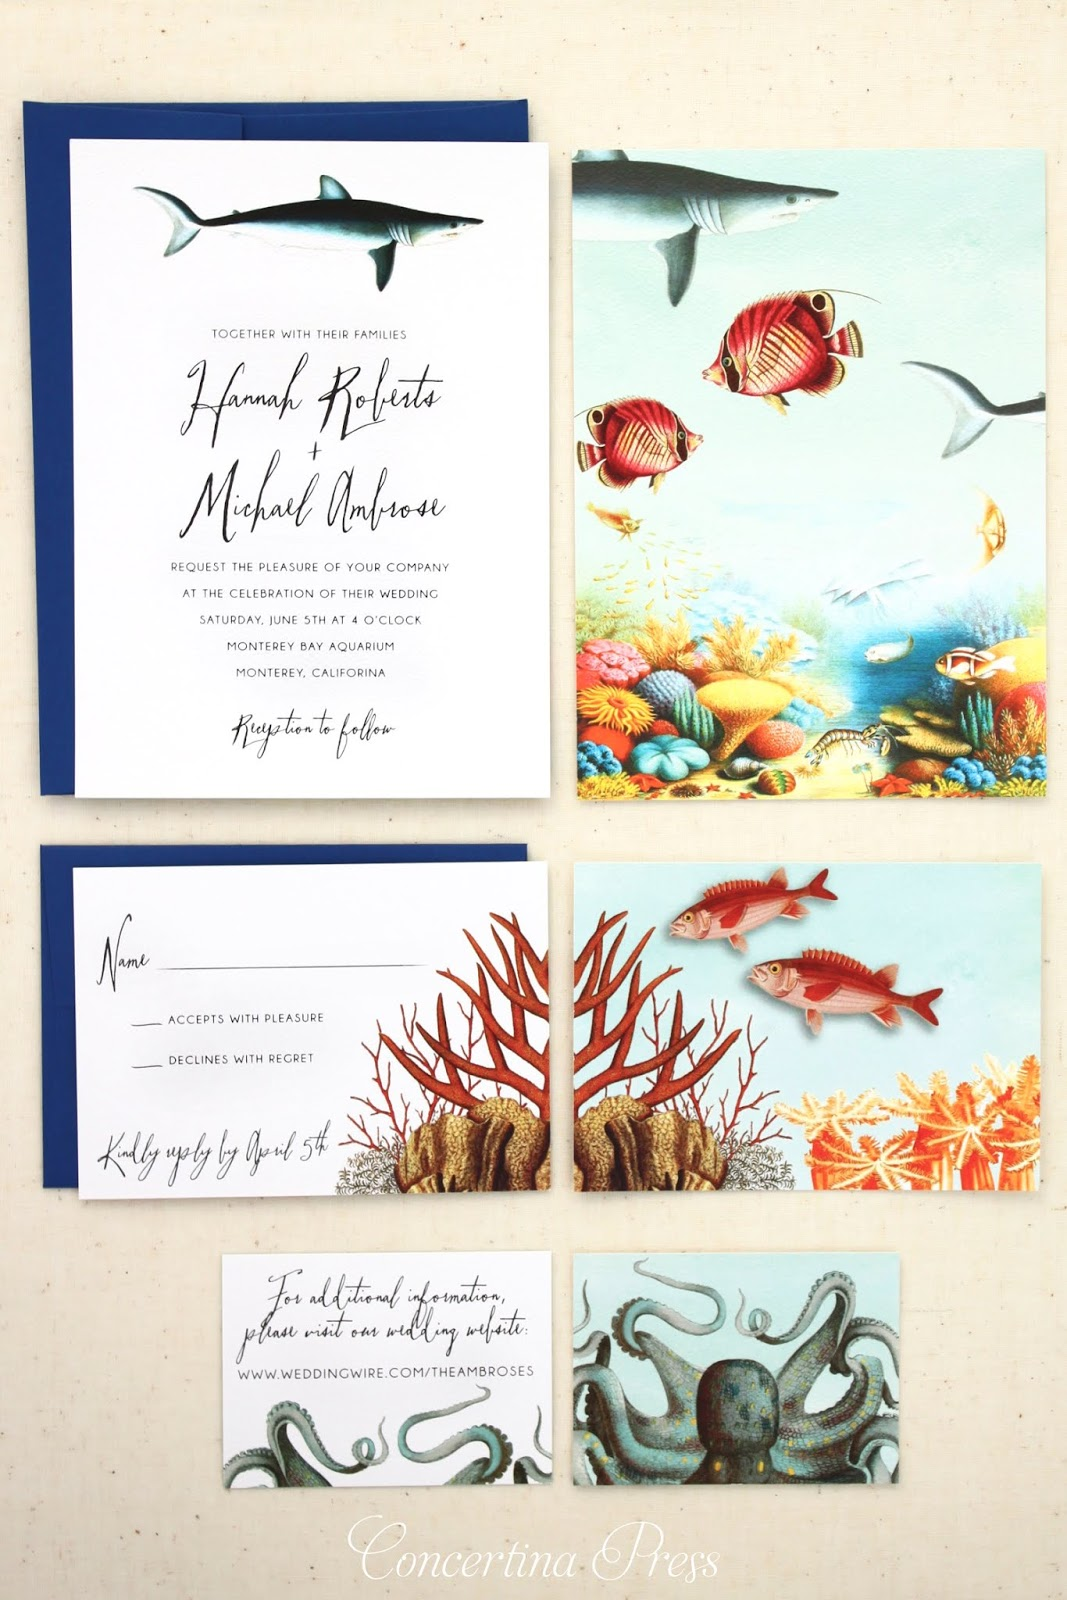 Ocean Wedding Invitation Set featuring a shark and a coral reef from Florida designer Concertina Press